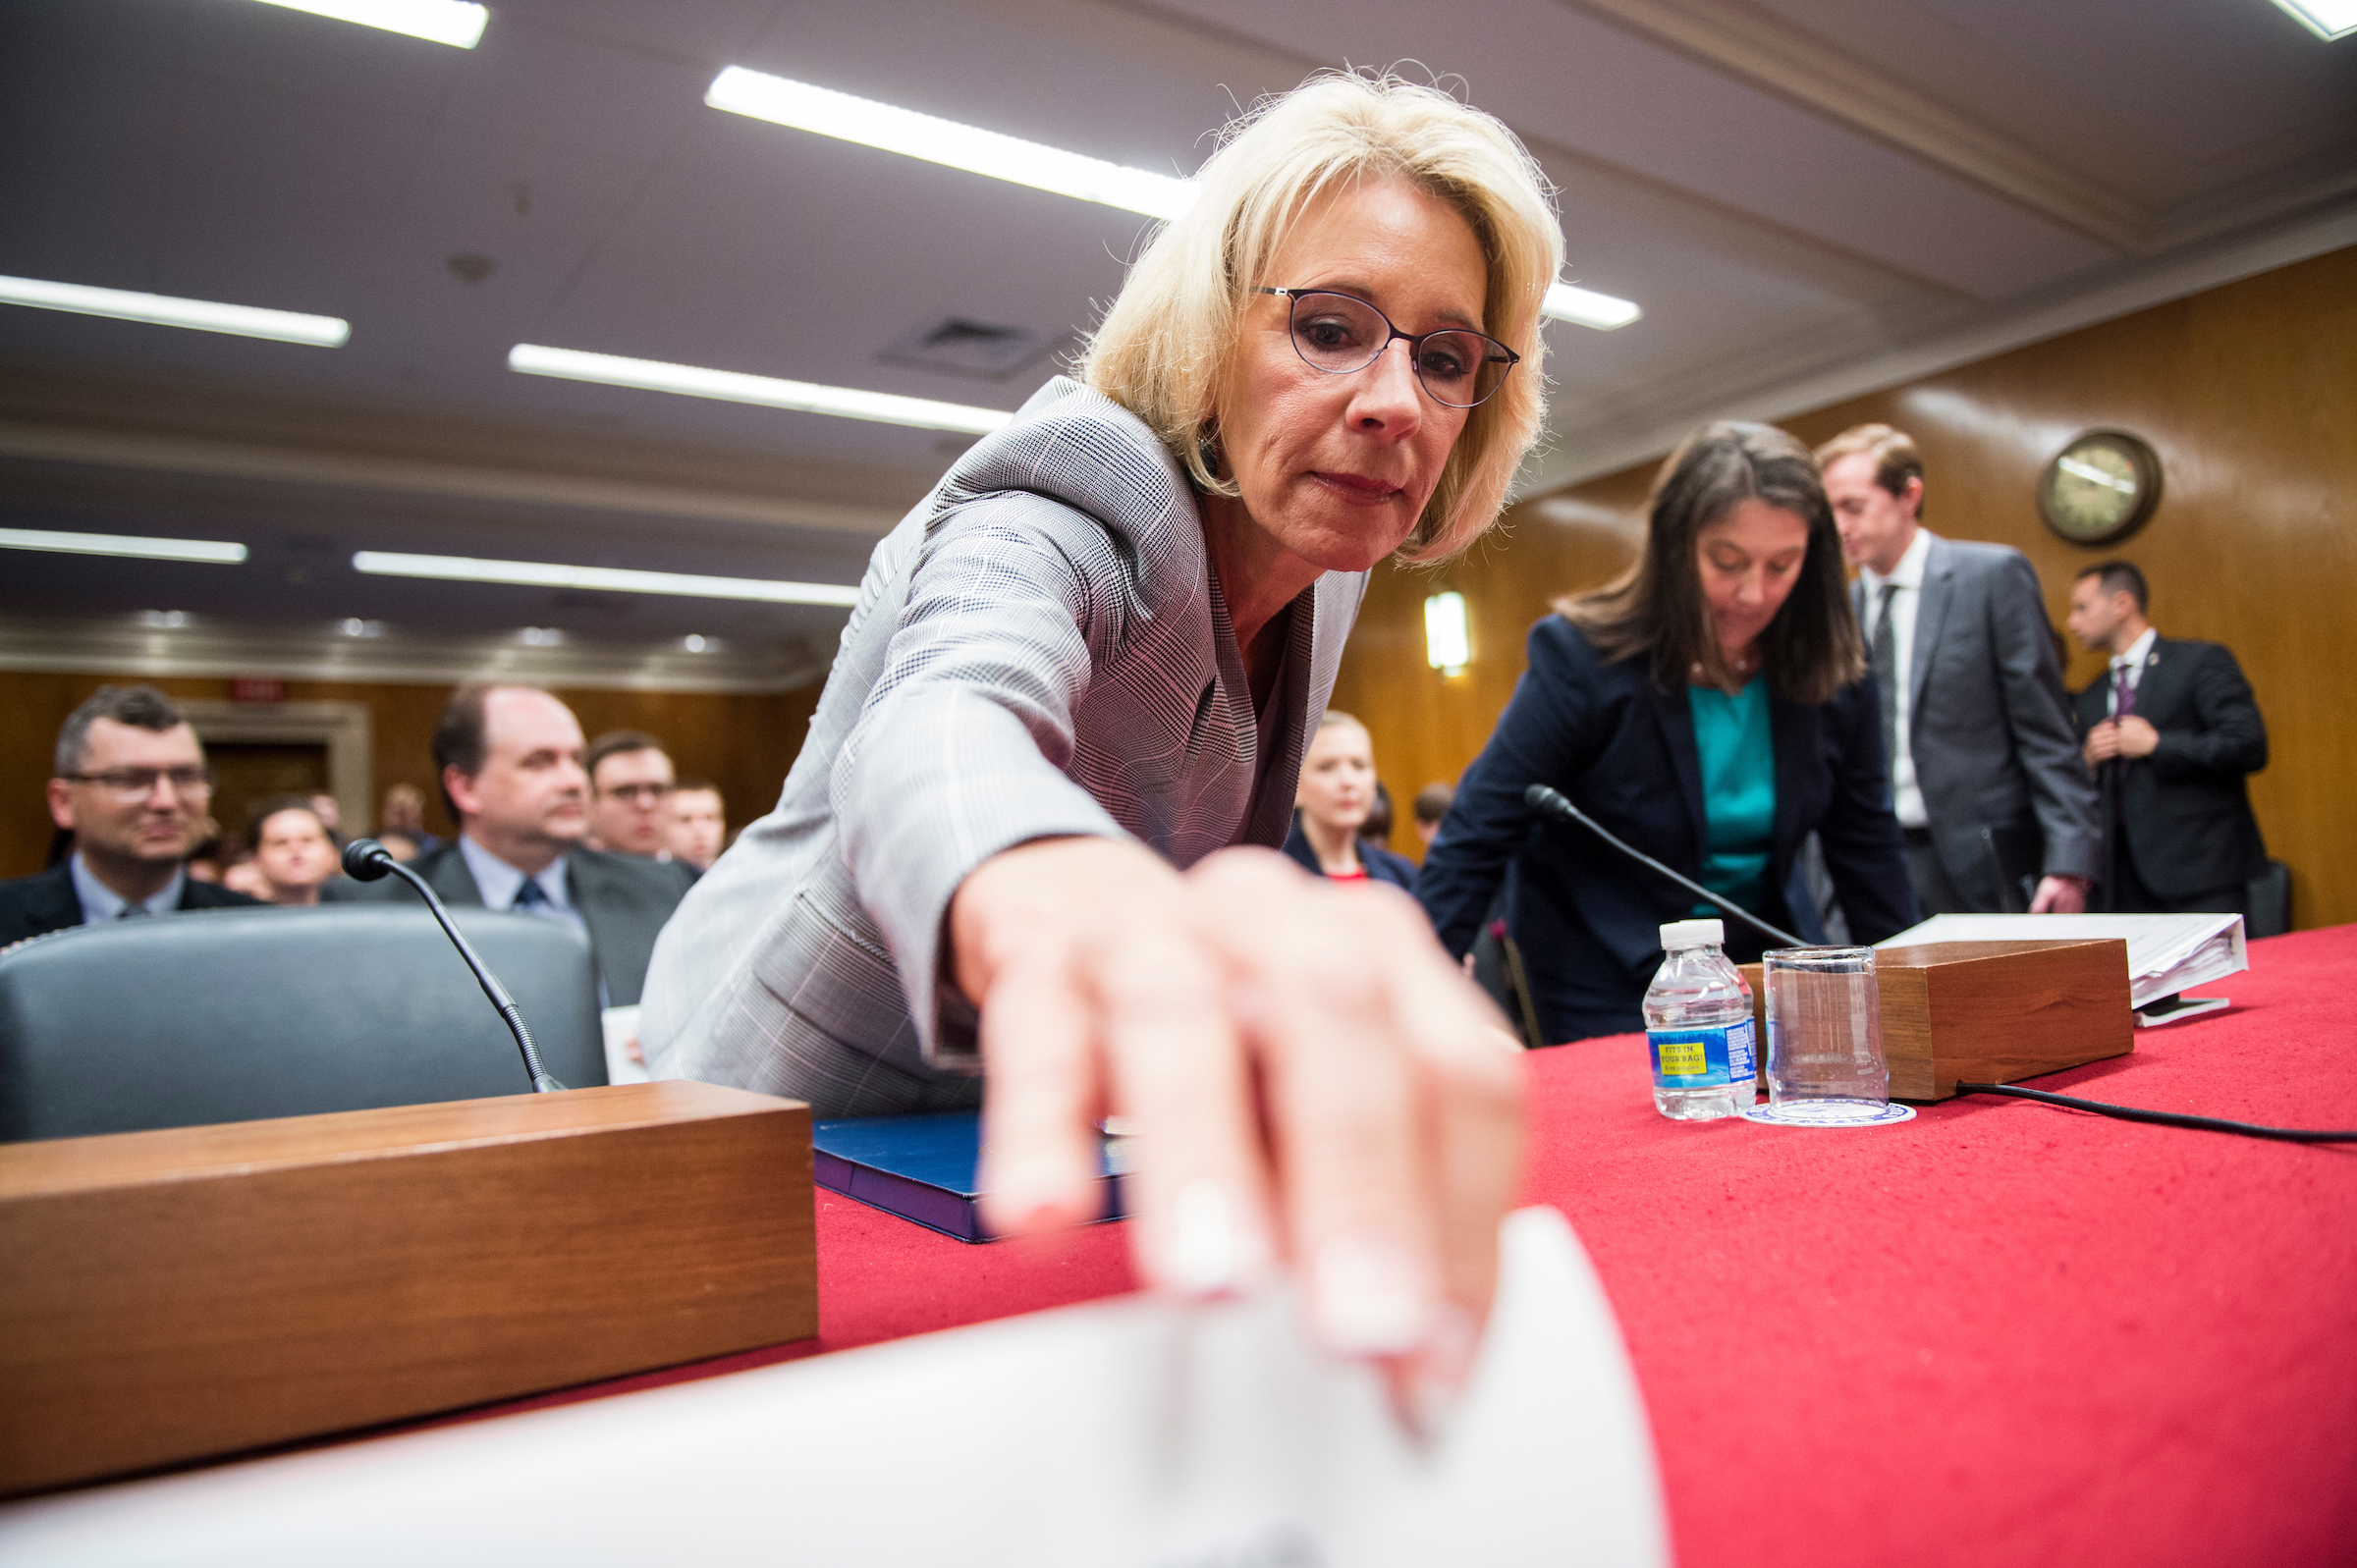 Secretary of Education Betsy DeVos arrives to testify during the Senate Appropriations Committee Labor, Health and Human Services, Education and Related Agencies Subcommittee hearing on the FY2018 budget request for the Education Department on Tuesday, June 6, 2017. (Photo By Bill Clark/CQ Roll Call)